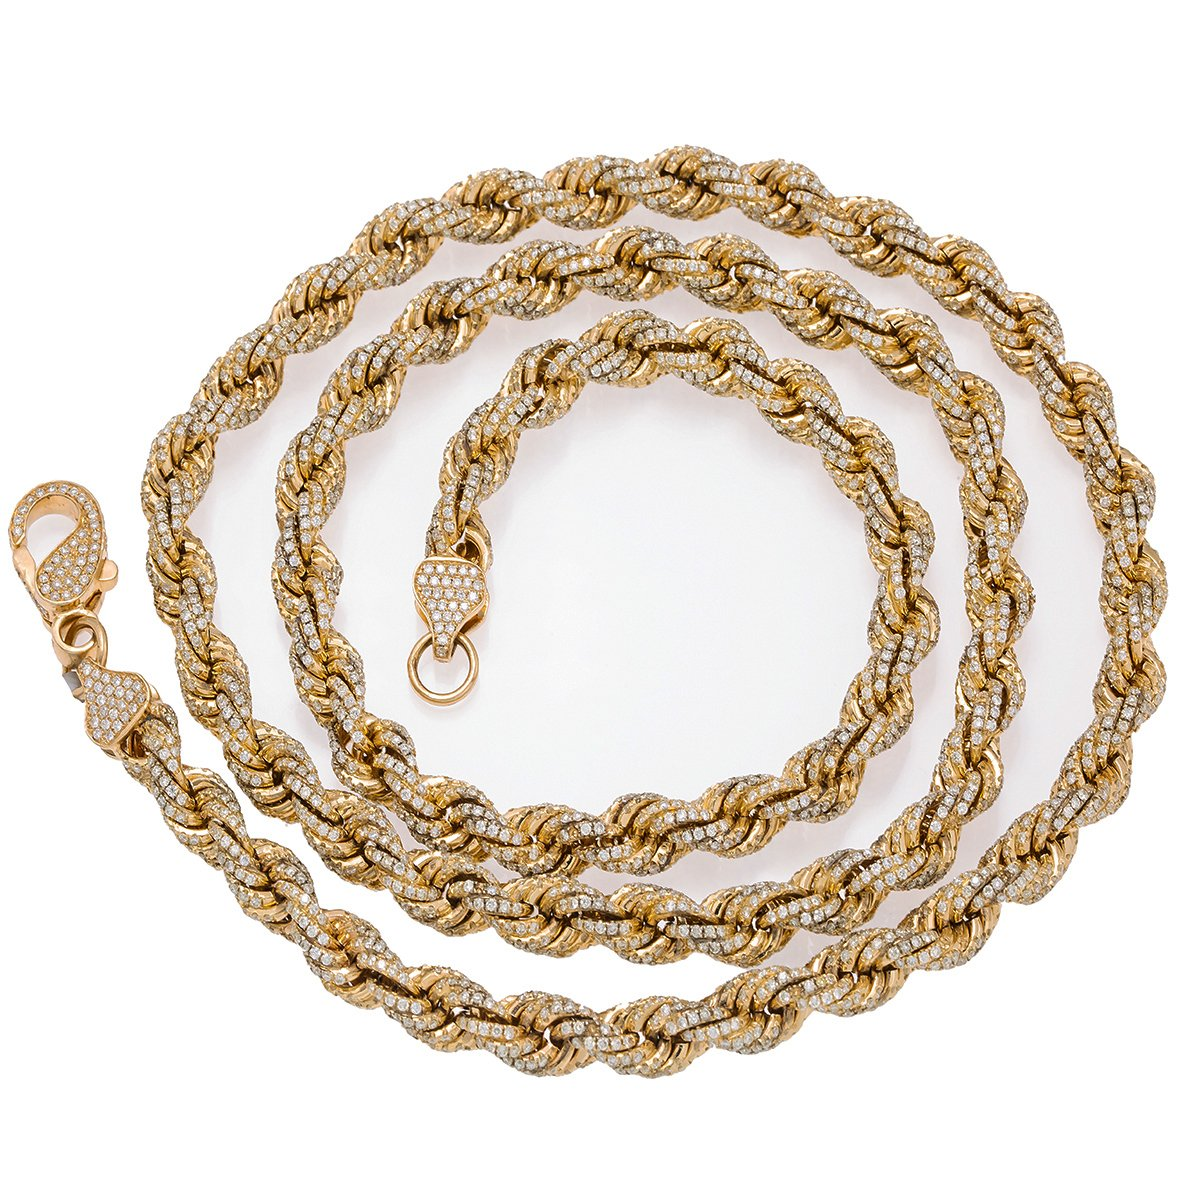 "10K Yellow Gold 30"" Rope Chain With 35.75 CT Diamonds"